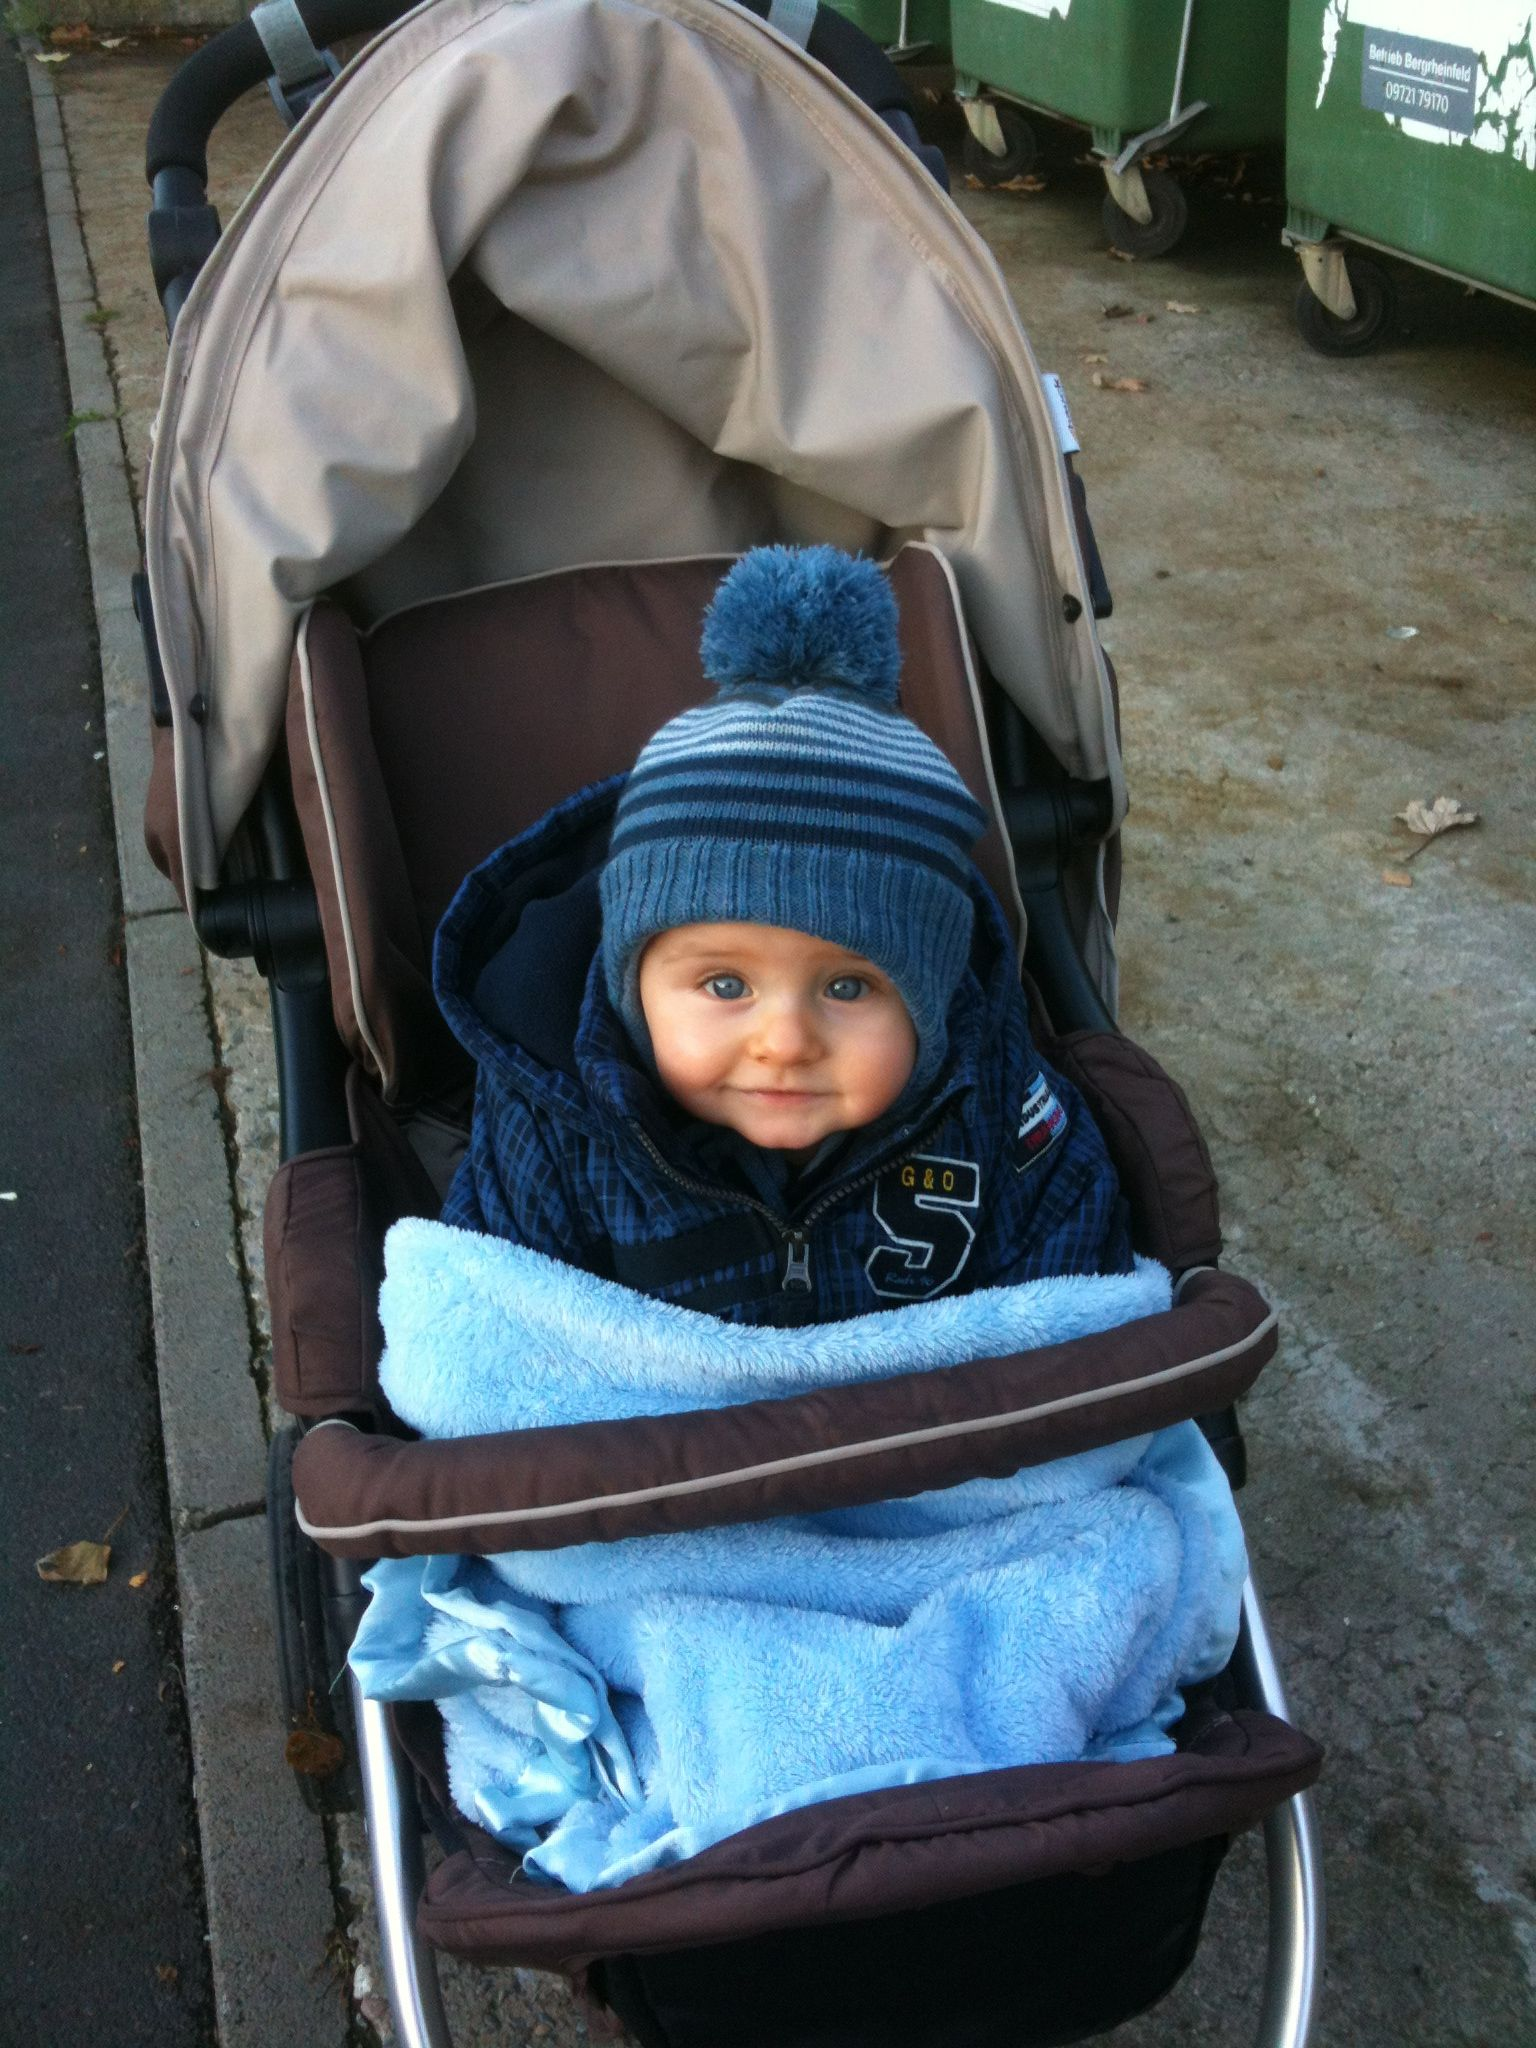 Little Max out for an evening Autumn walk in Germany.